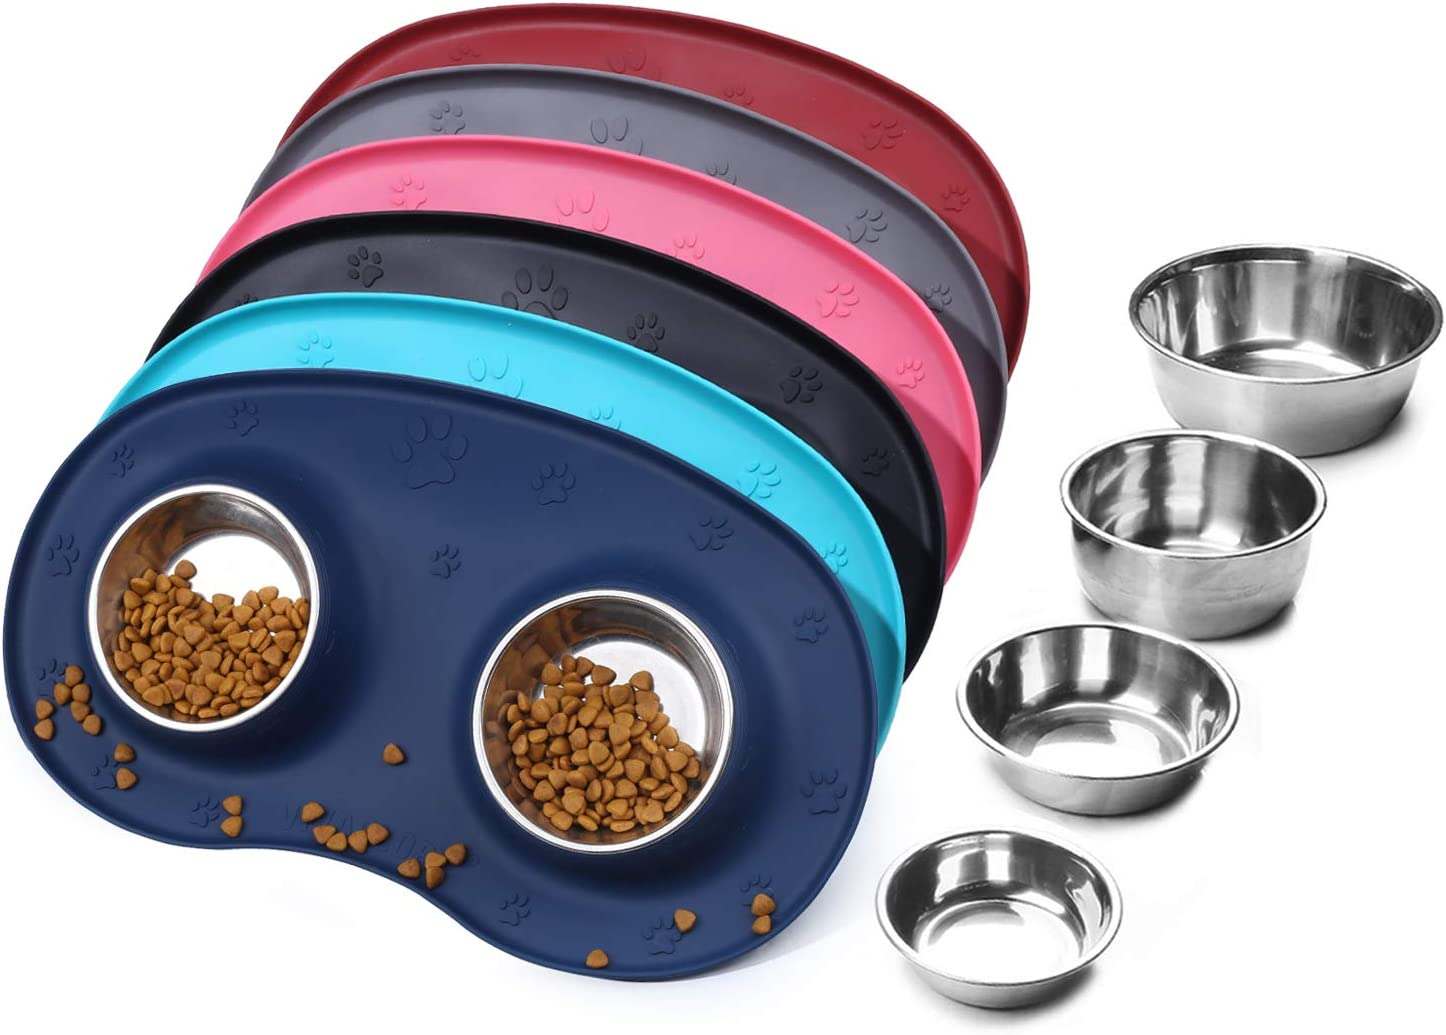 Vivaglory Dog Bowls Stainless Steel Cat Puppy Food and Water Bowls with Wider Non Skid & Non-Spill Silicone Mat, Navy Blue